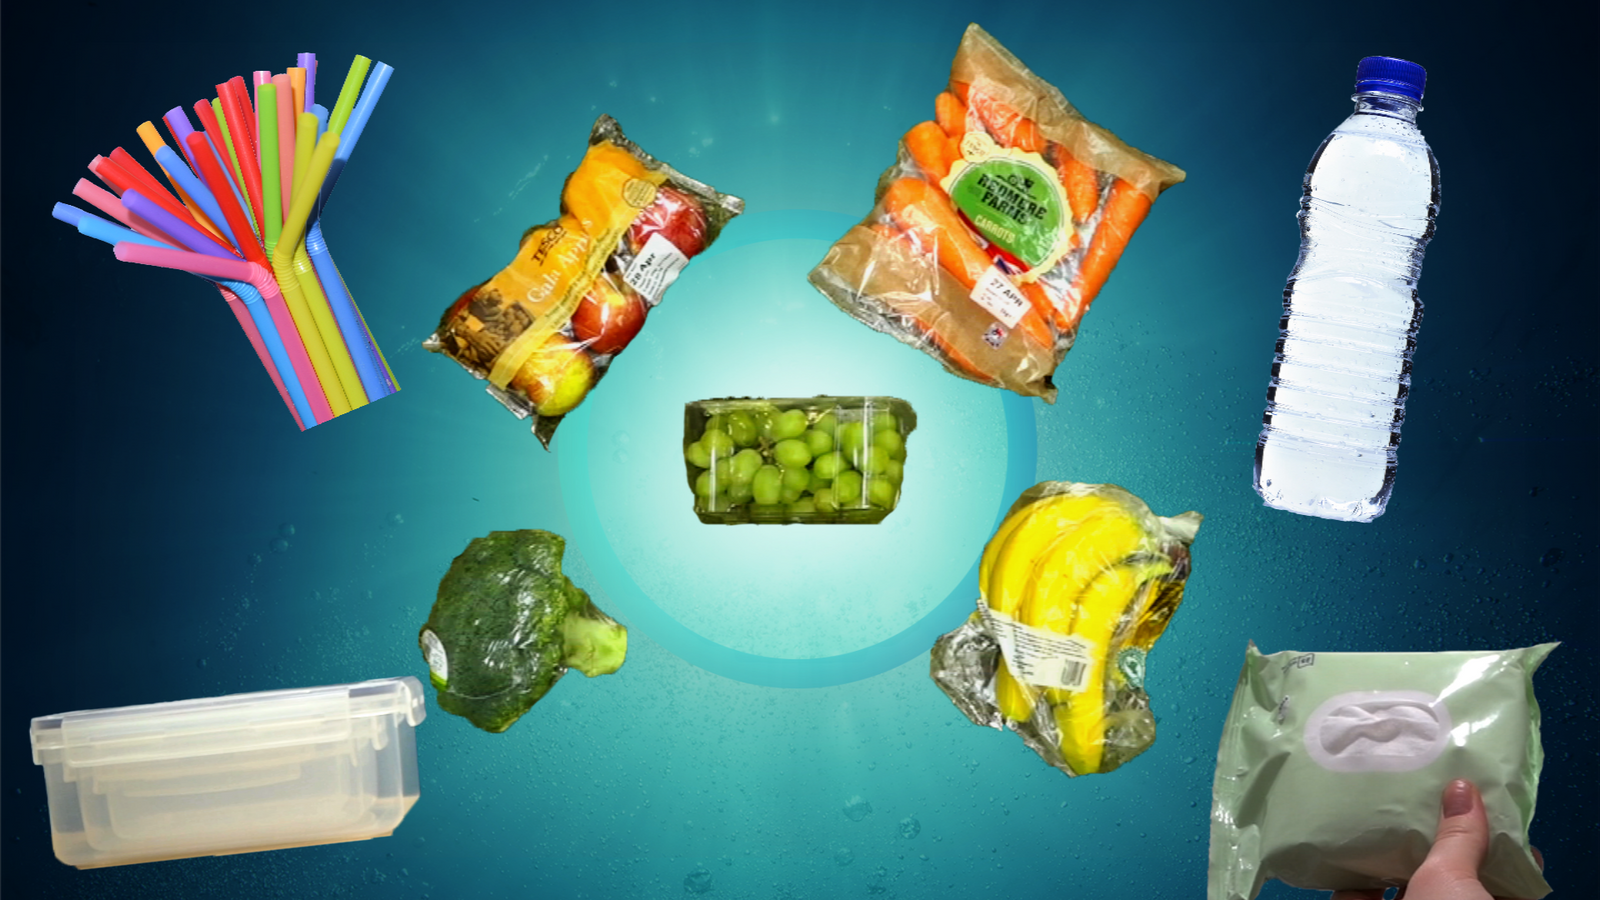 There are five easy ways you can reduce how much single-use plastic you use.